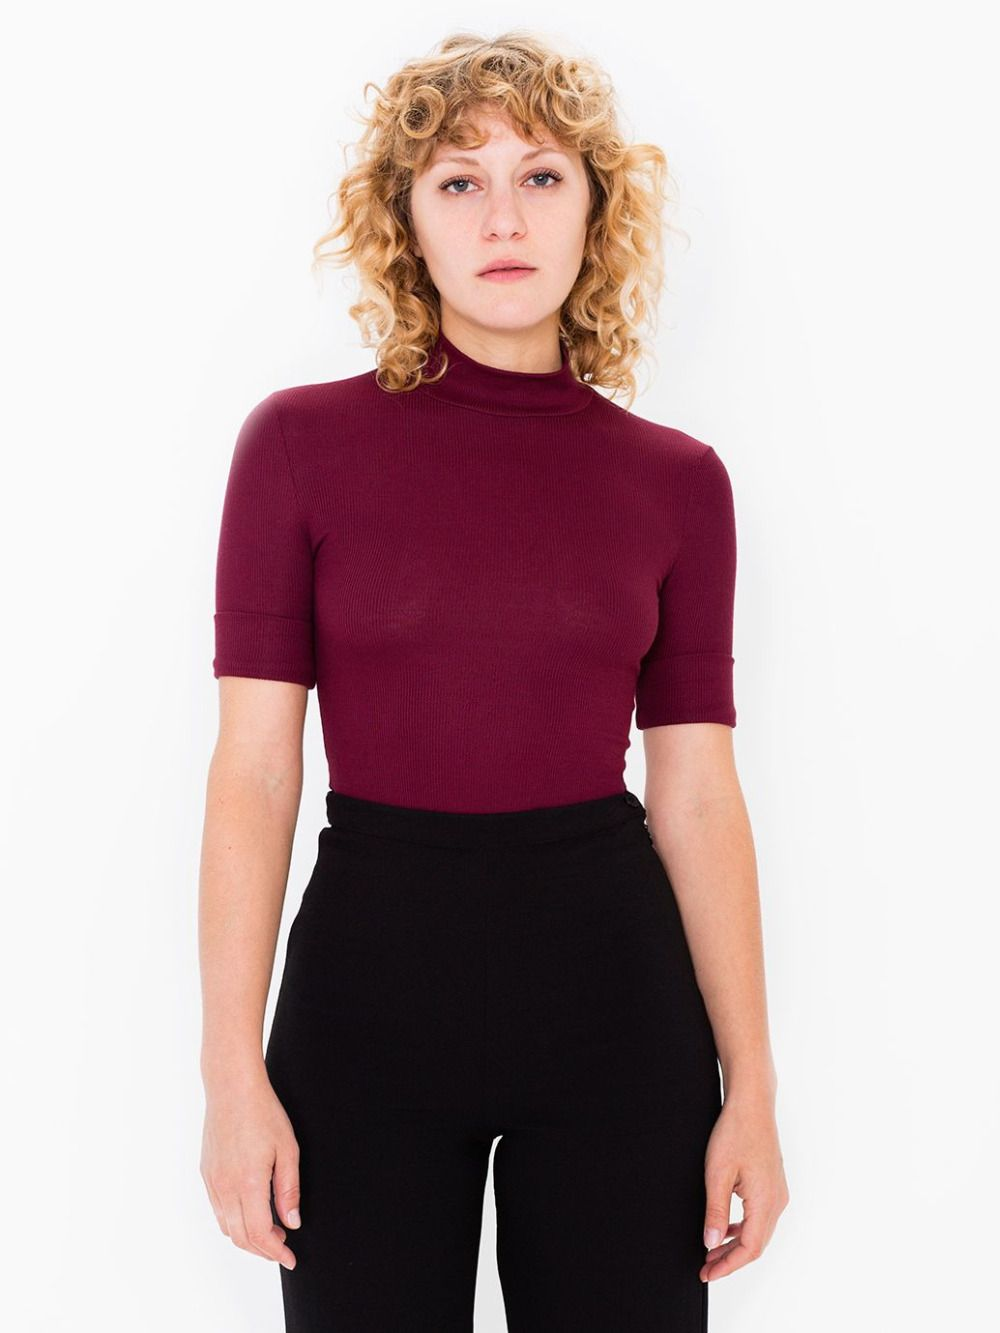 Shop American Apparel - Find fashionable basics for men, women, children,  and babies. Made in USA clothing.